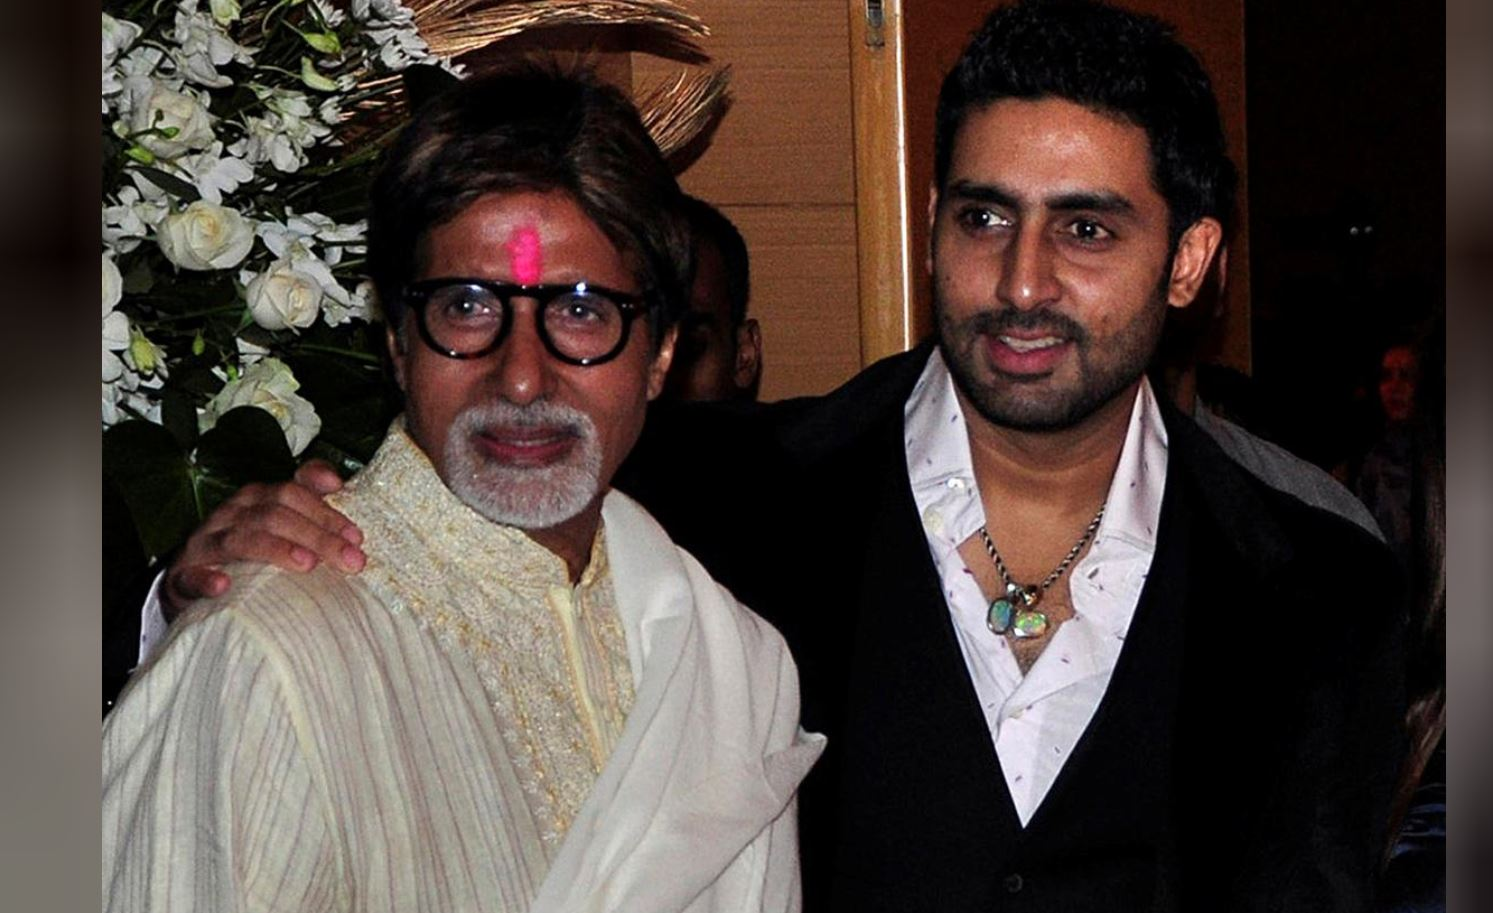 Indian actor Amitabh Bachchan, son Abhishek in stable condition -  health officials